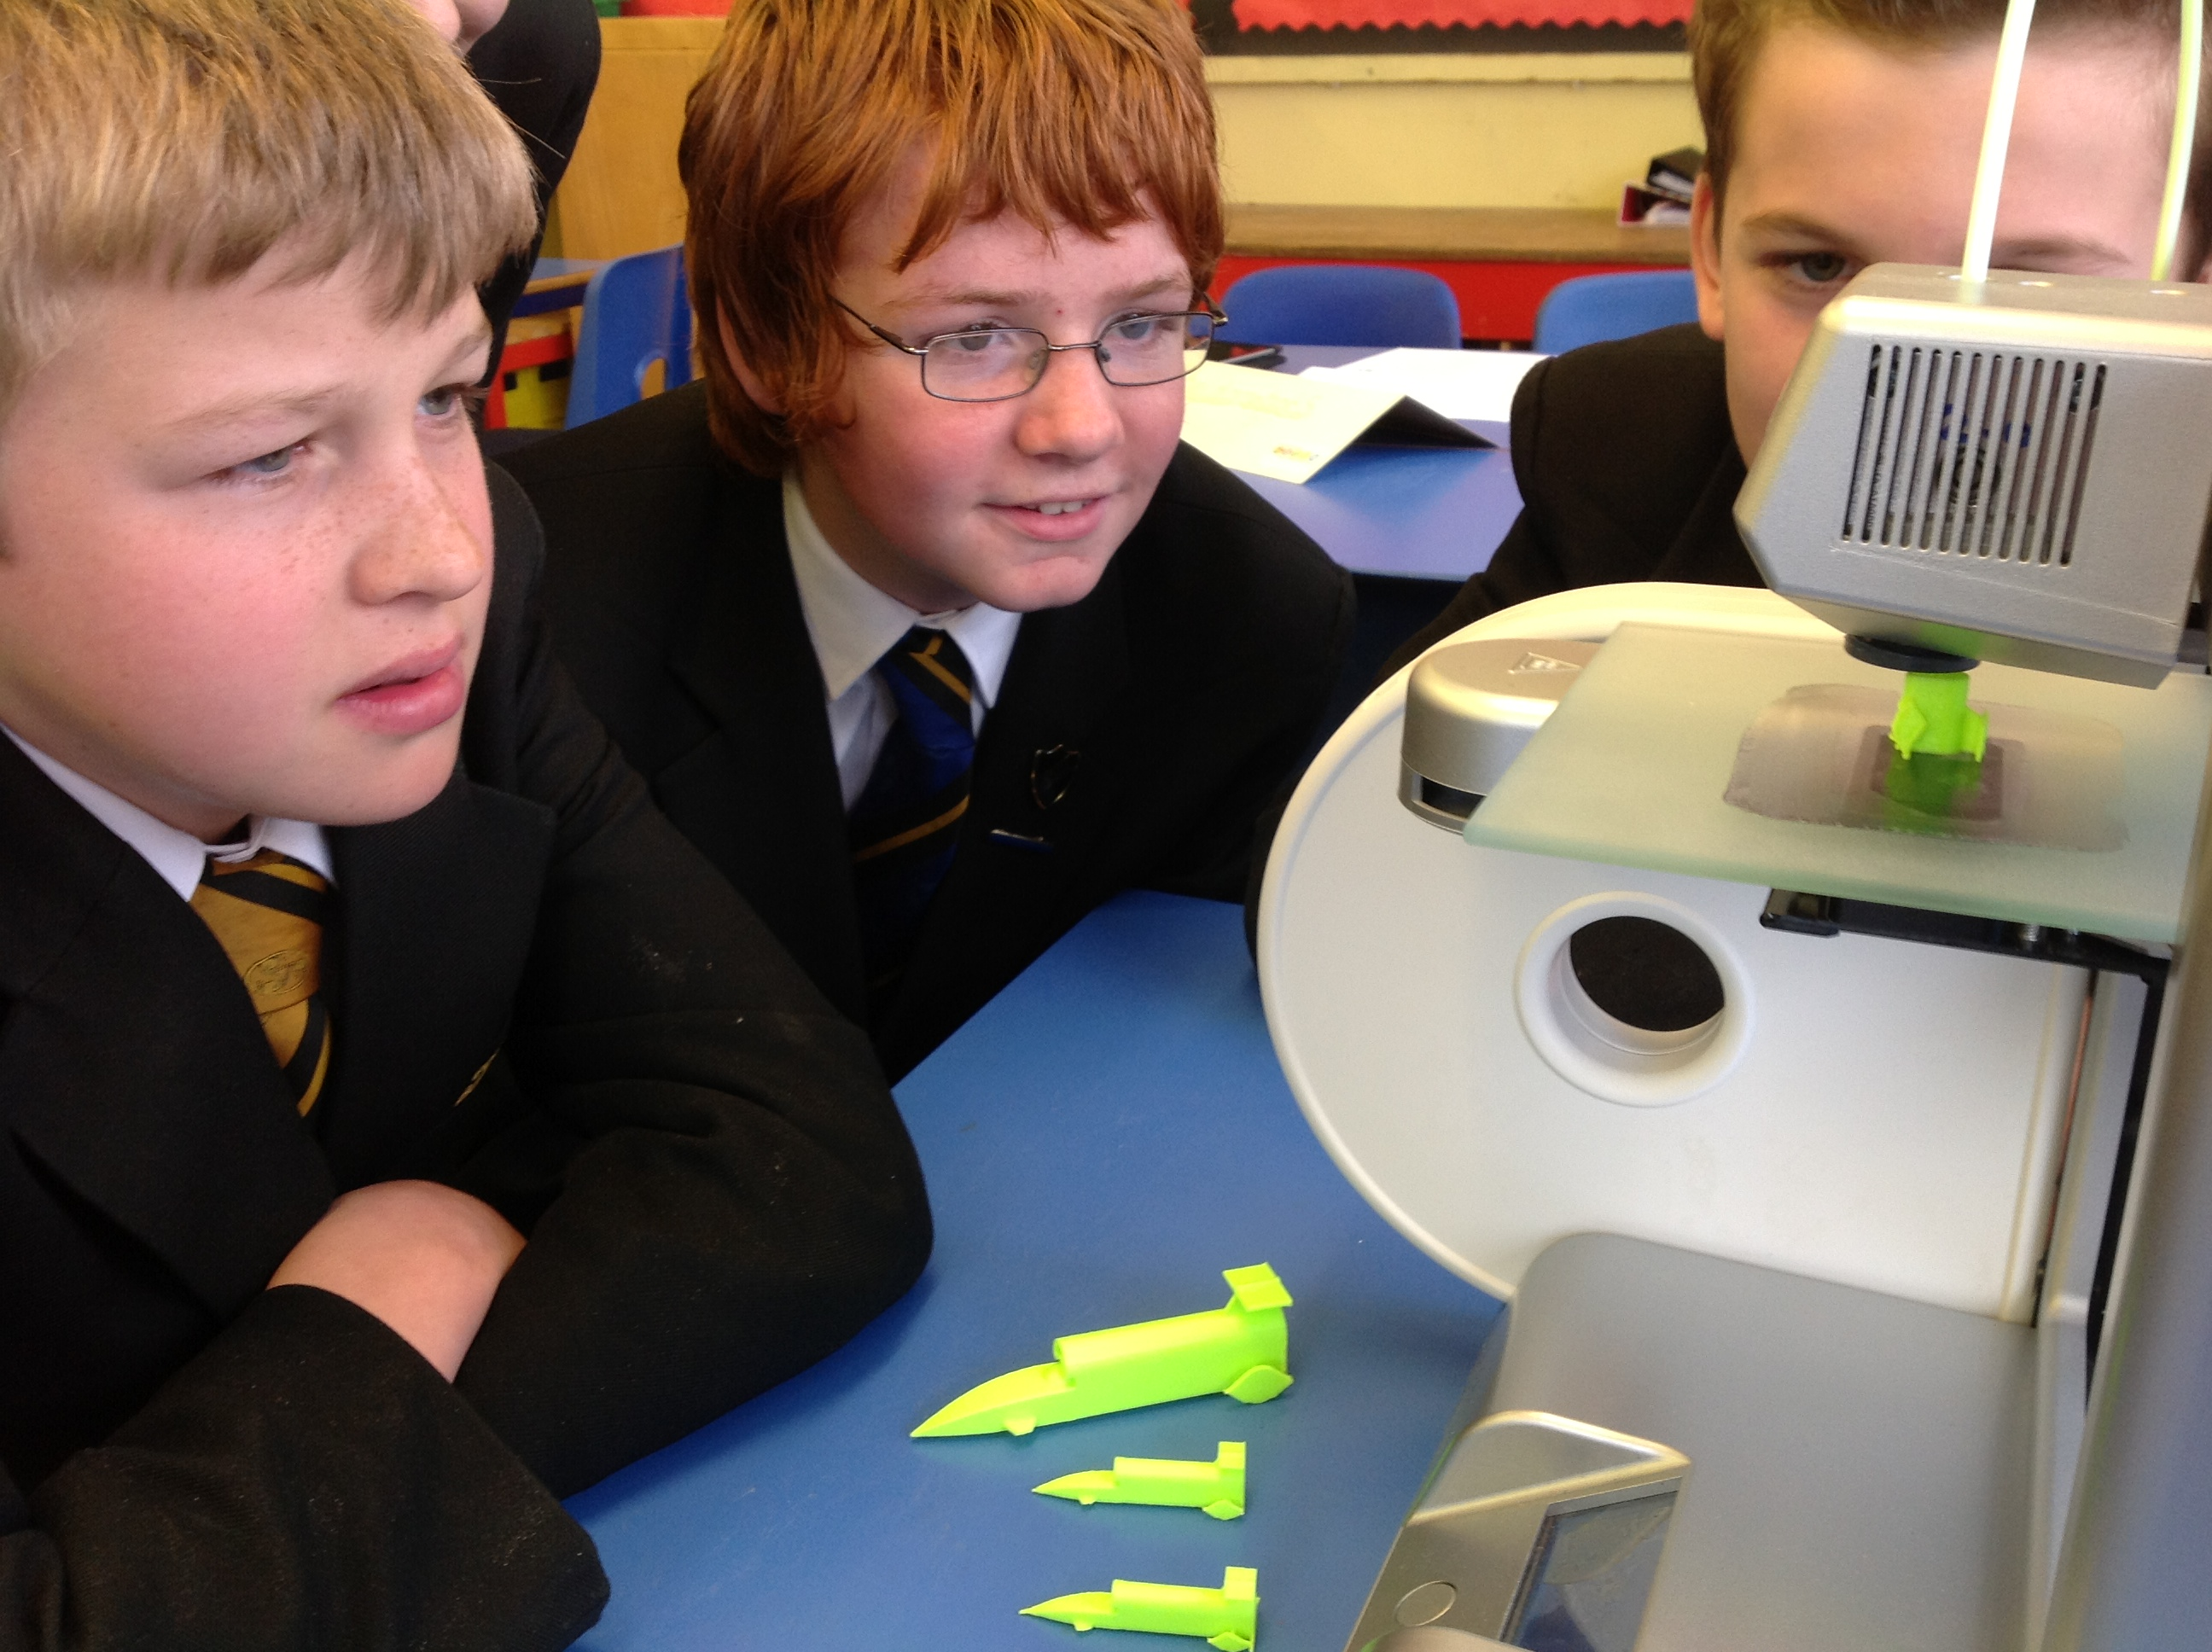 School children watch the Cube 3D printer at work.